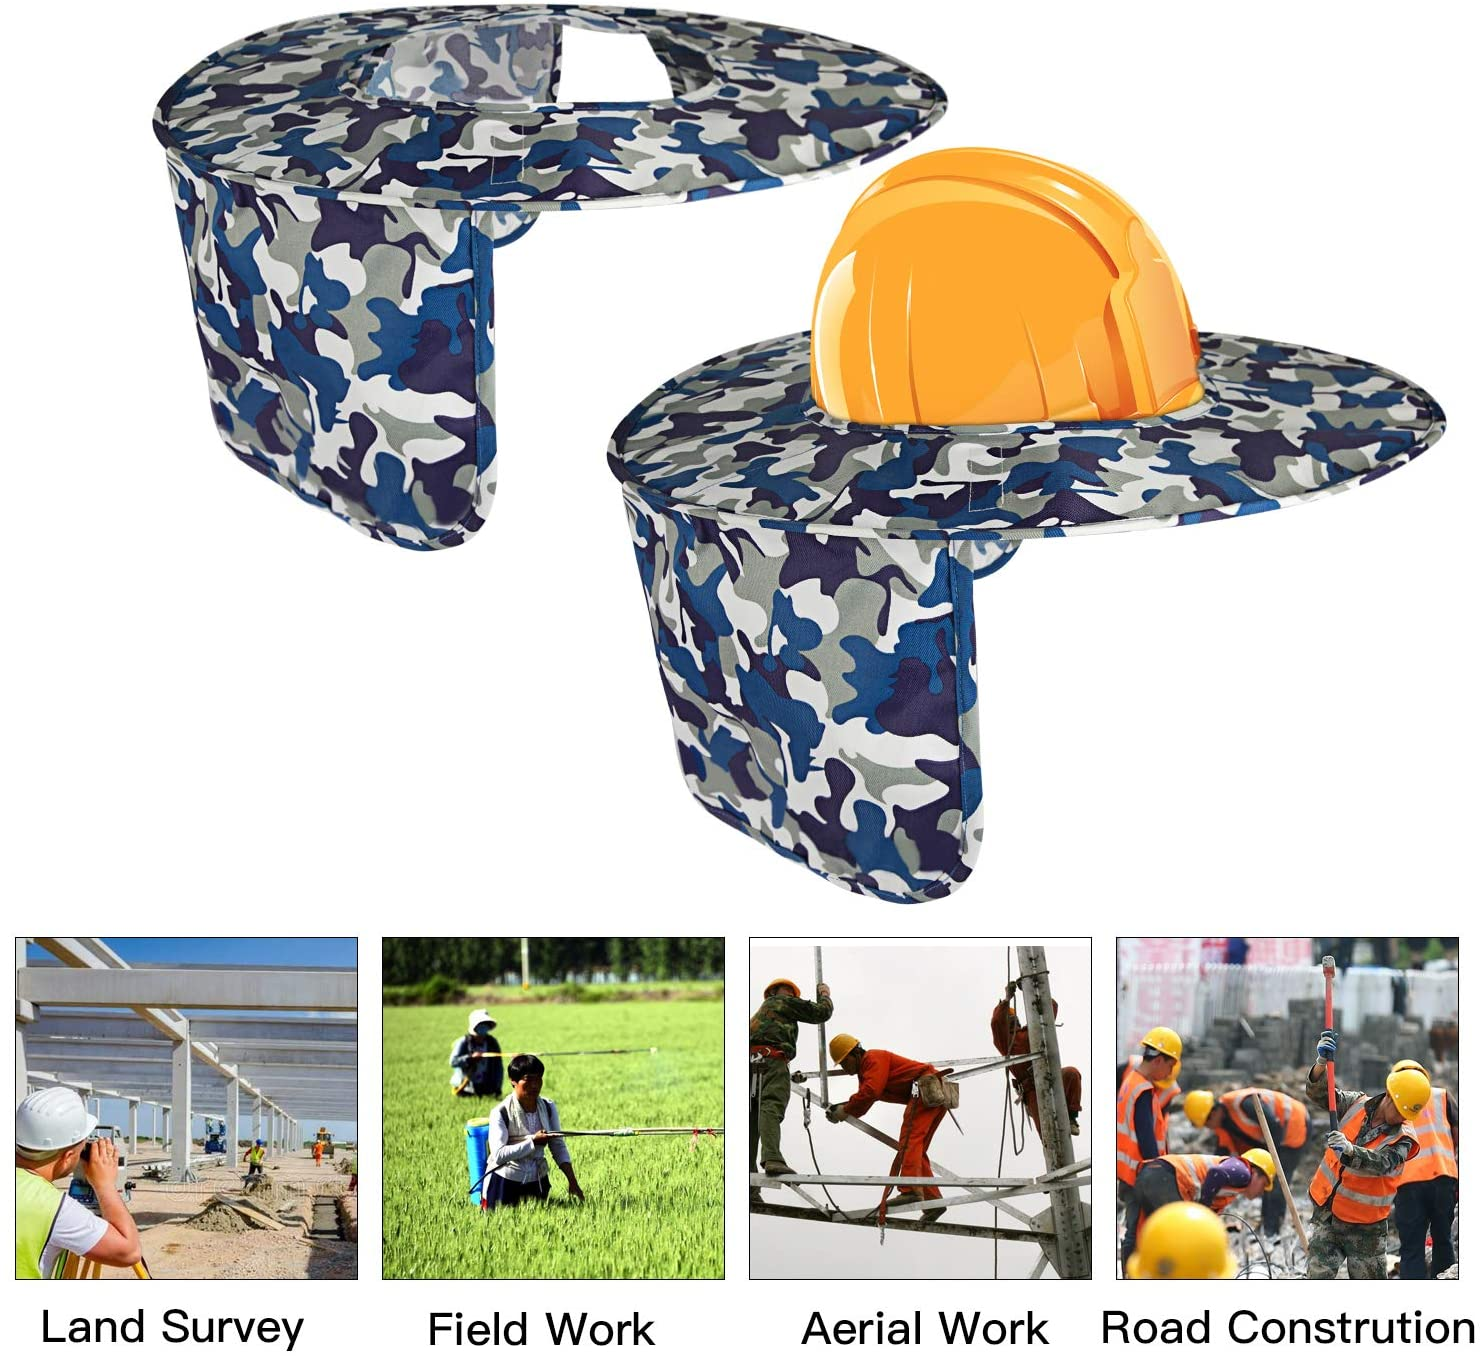 Hard Hat Visor And Neck Shade, House Full Brim Sun-shield Camouflage Polyester Sun Shade Protector for Hard Hats Helmets, One Size Fits Most (Camouflage)